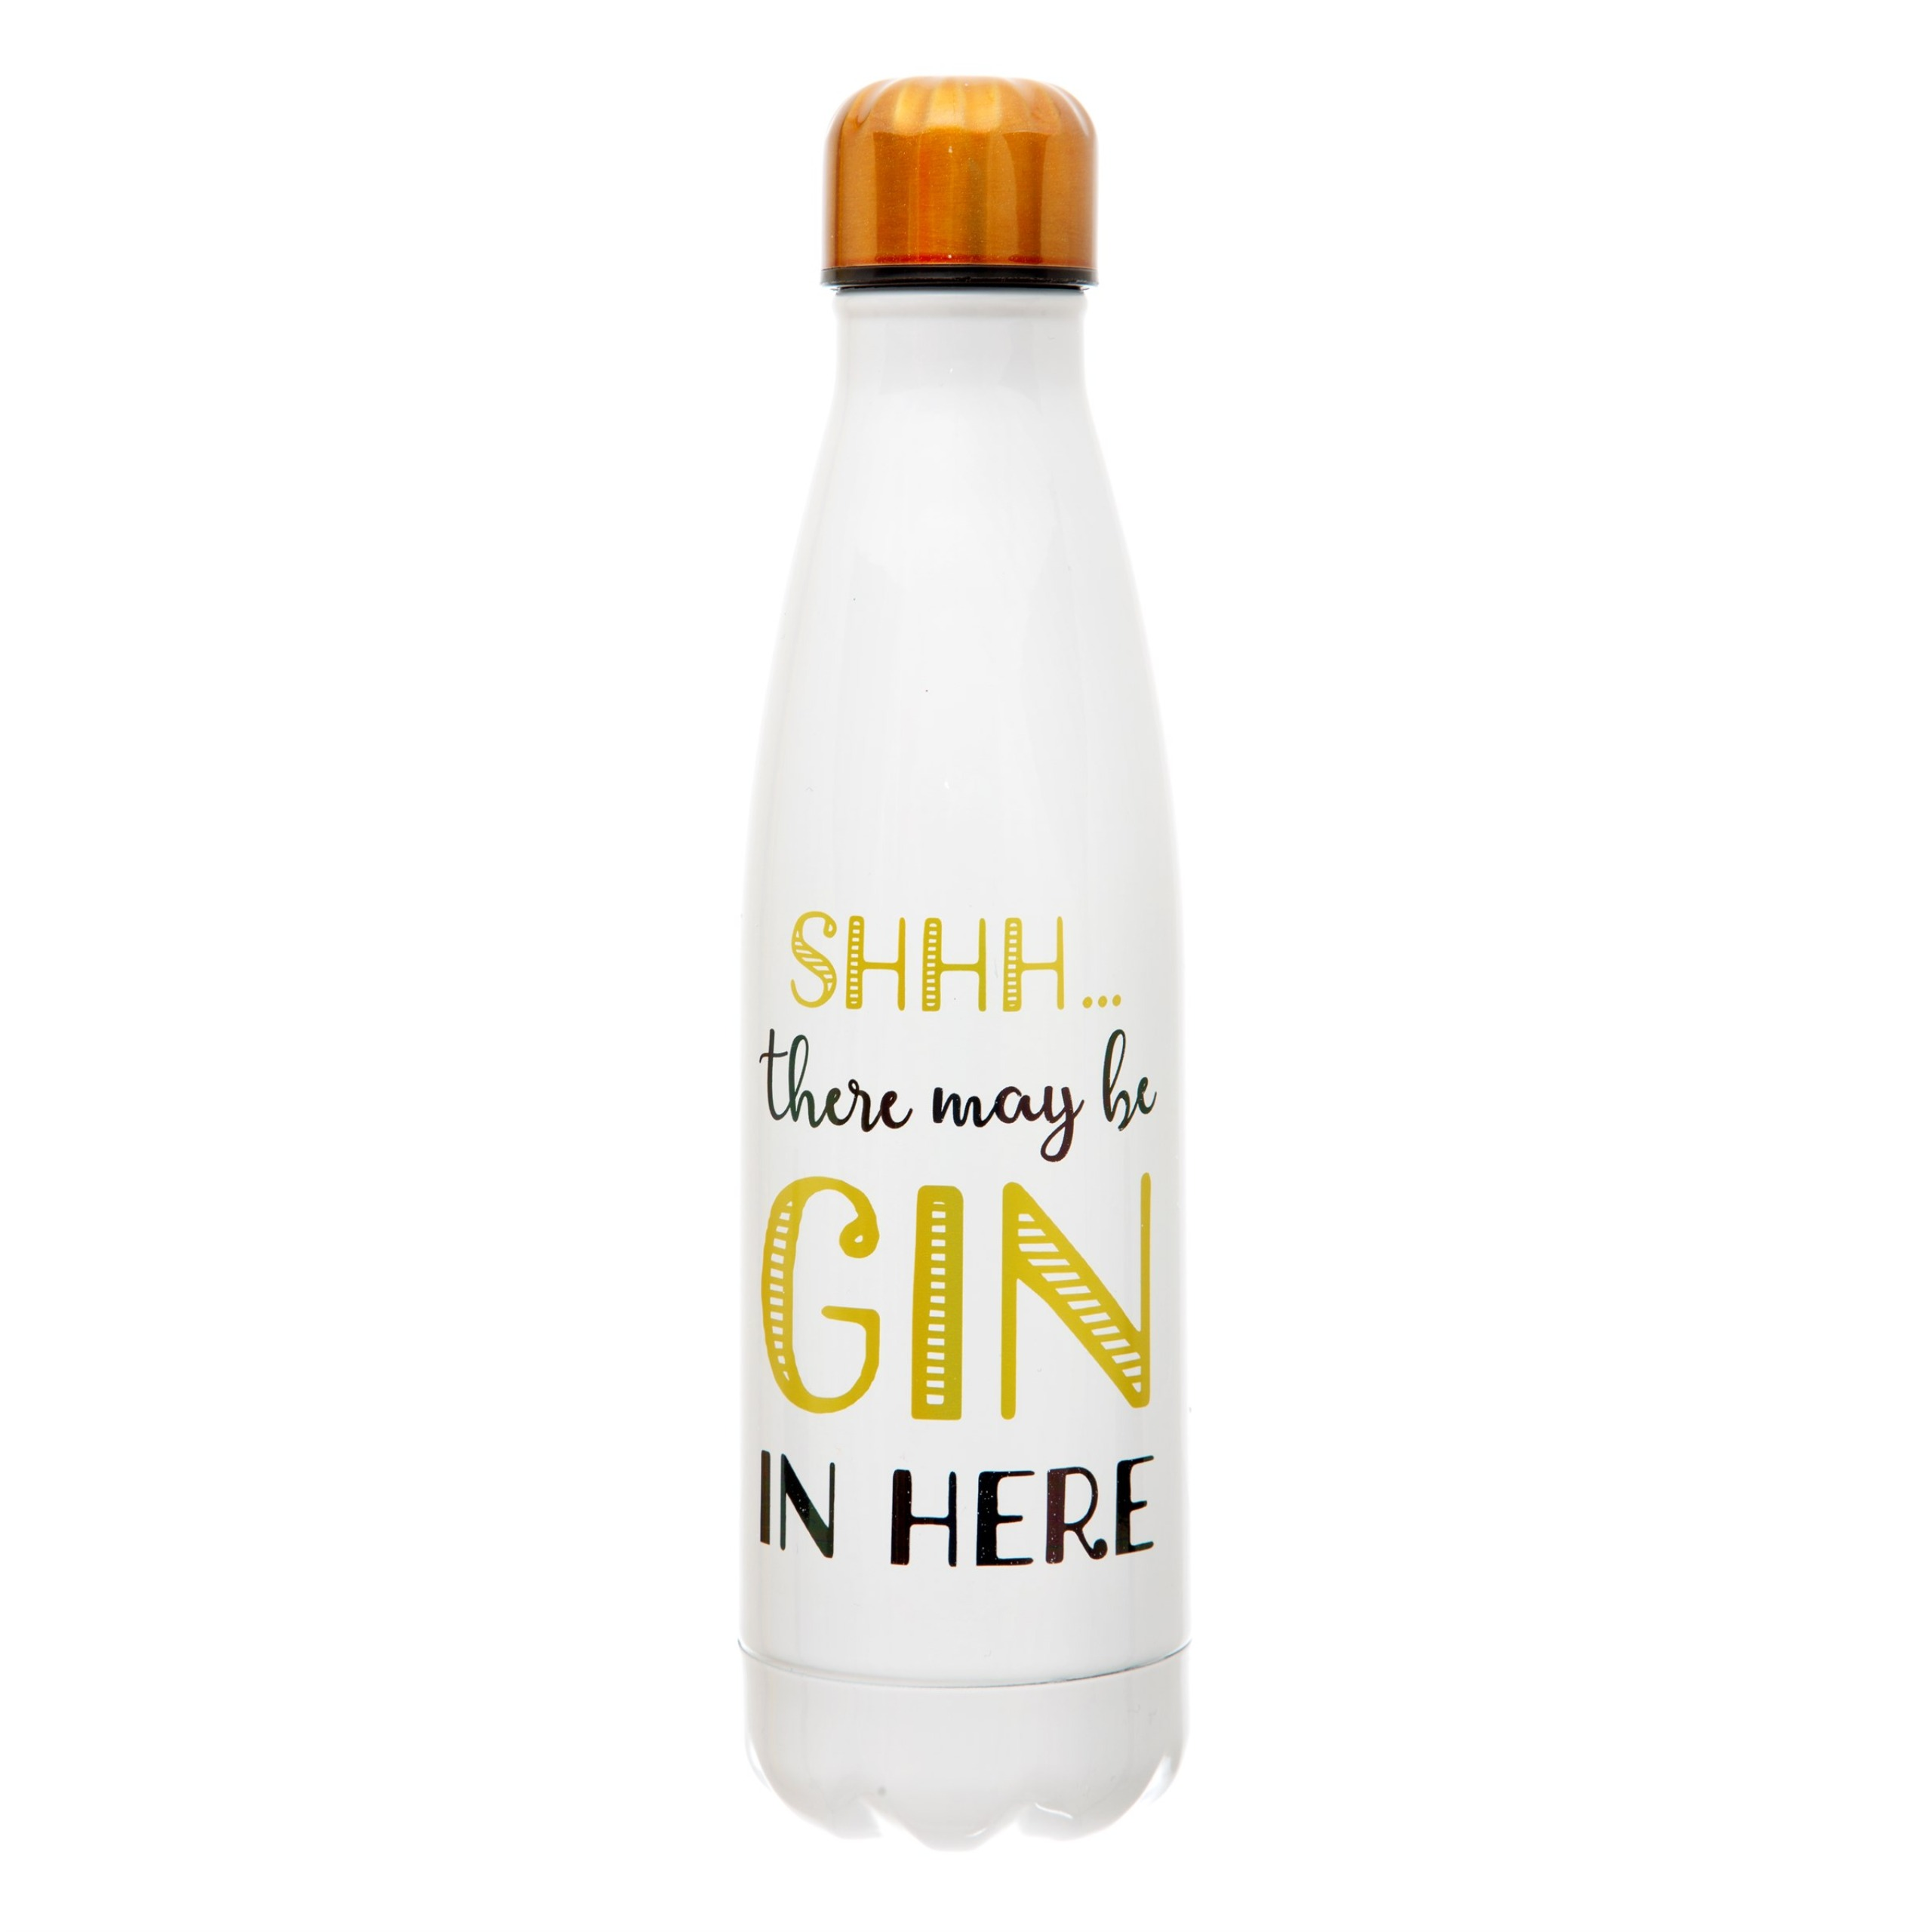 'Shhh...there may be gin in here' stainless steel reusable hot/cold drinks bottle